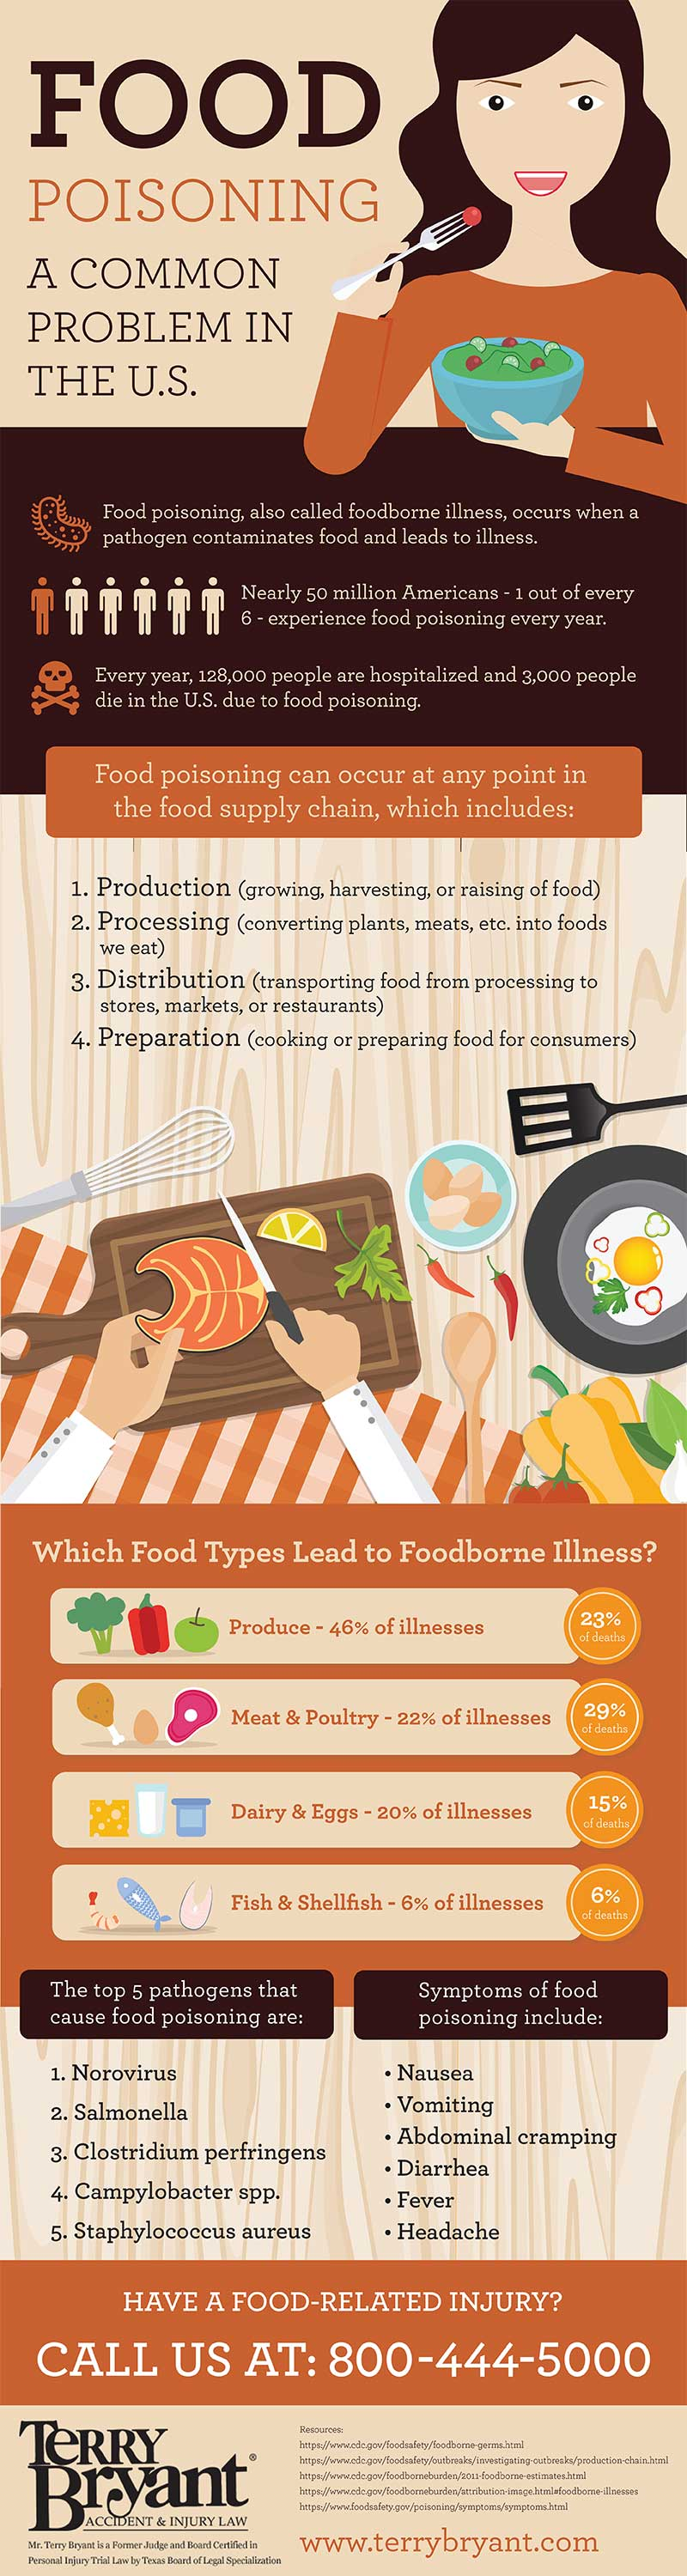 Is All The Food In The U.S Unsafe? - Infographic